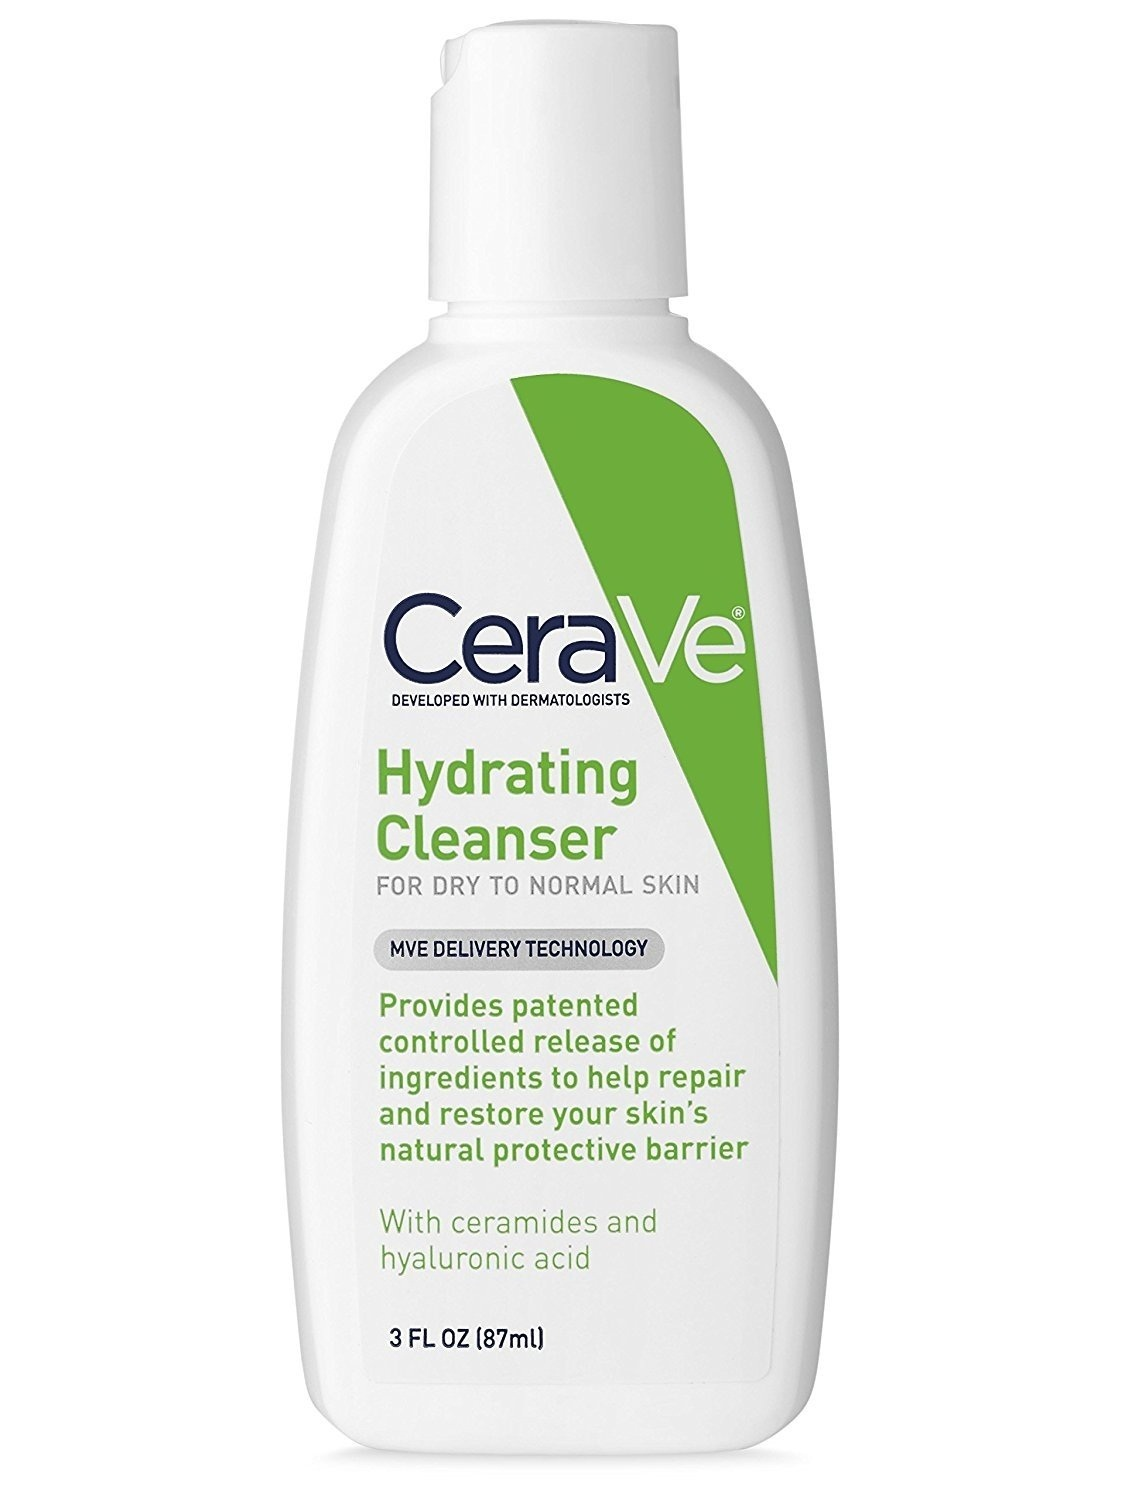 CeraVe Hydrating Facial Cleanser - for Normal to Dry Skin 3 oz (87ml).jpg